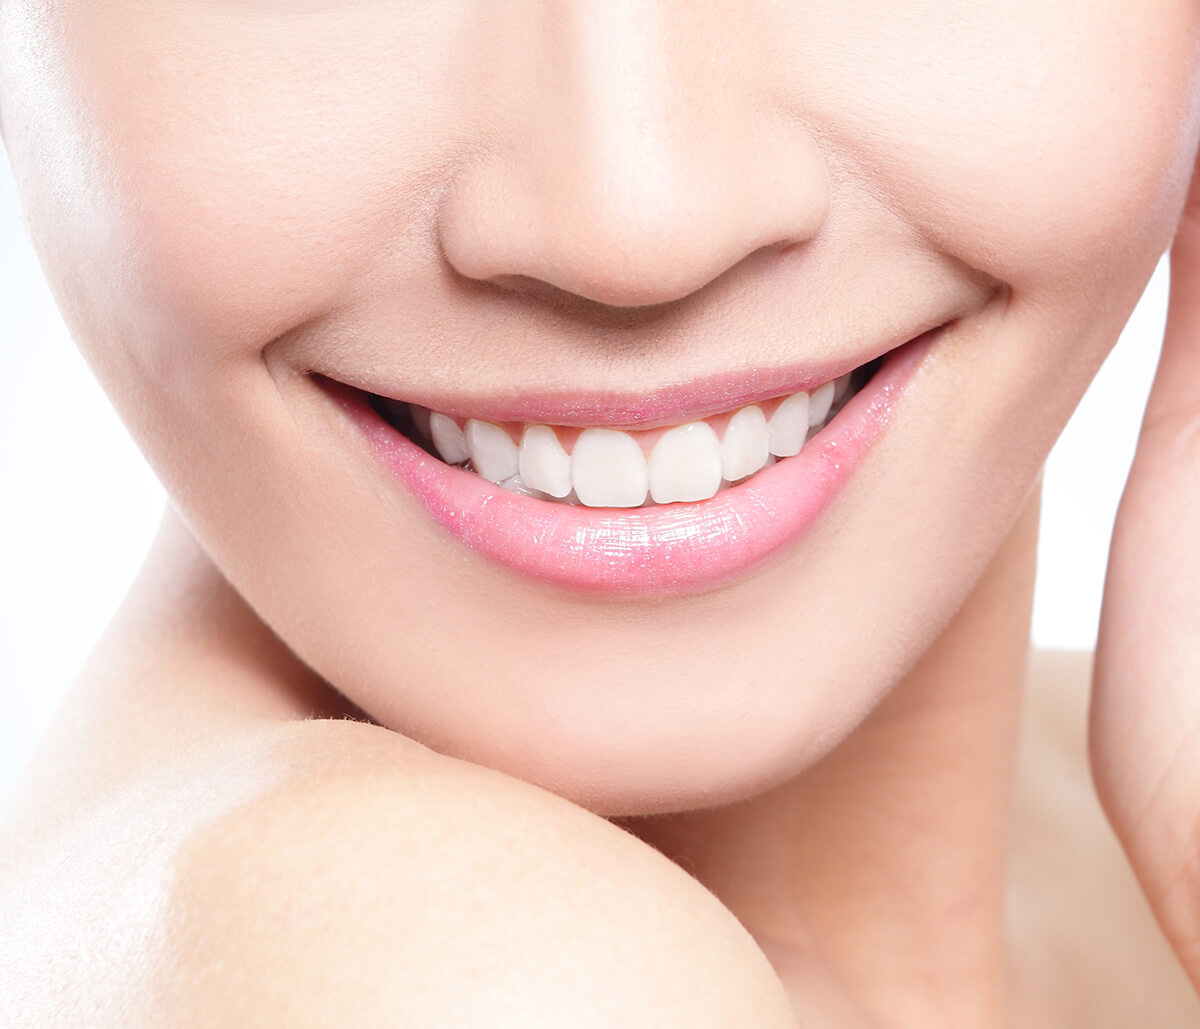 Dentist in Fort Lauderdale Area Explains the Connection Between 8th Tooth or the First Incisor and Overall Health